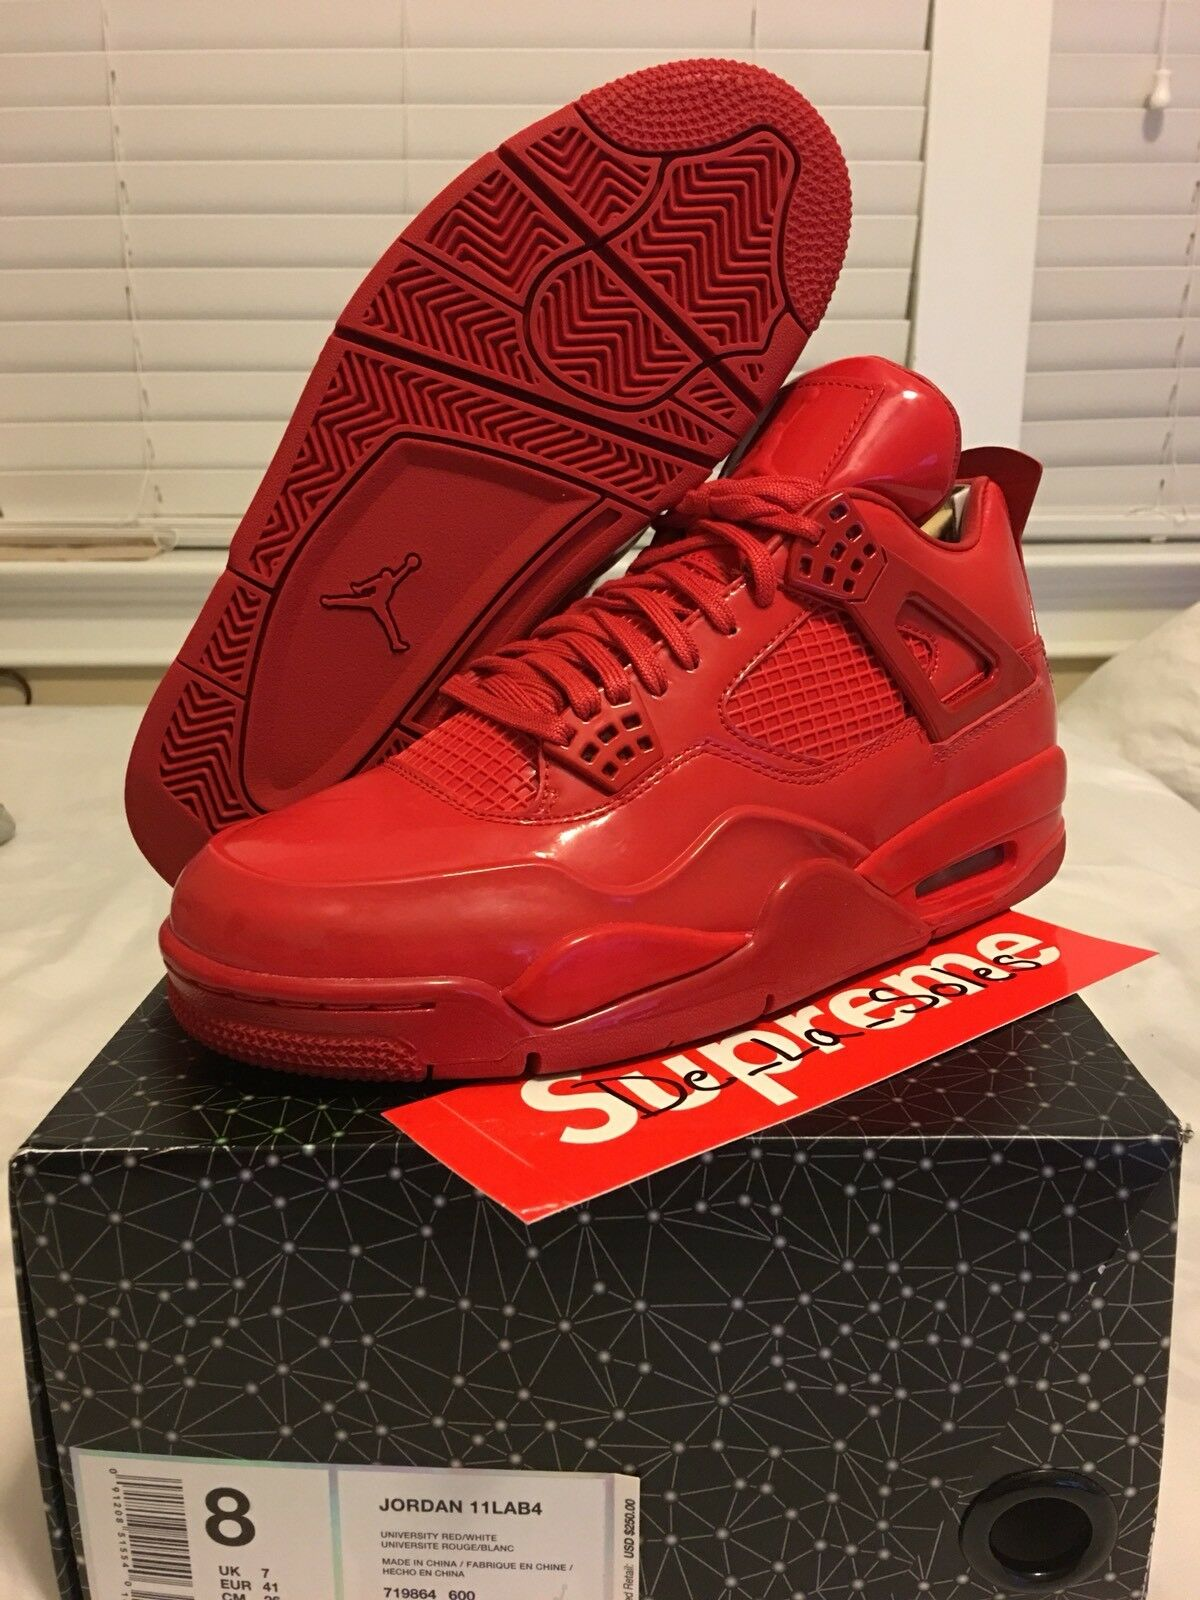 DS Air Jordan 11Lab4 University Red Size 8 Mens Basketball shoes 719864600